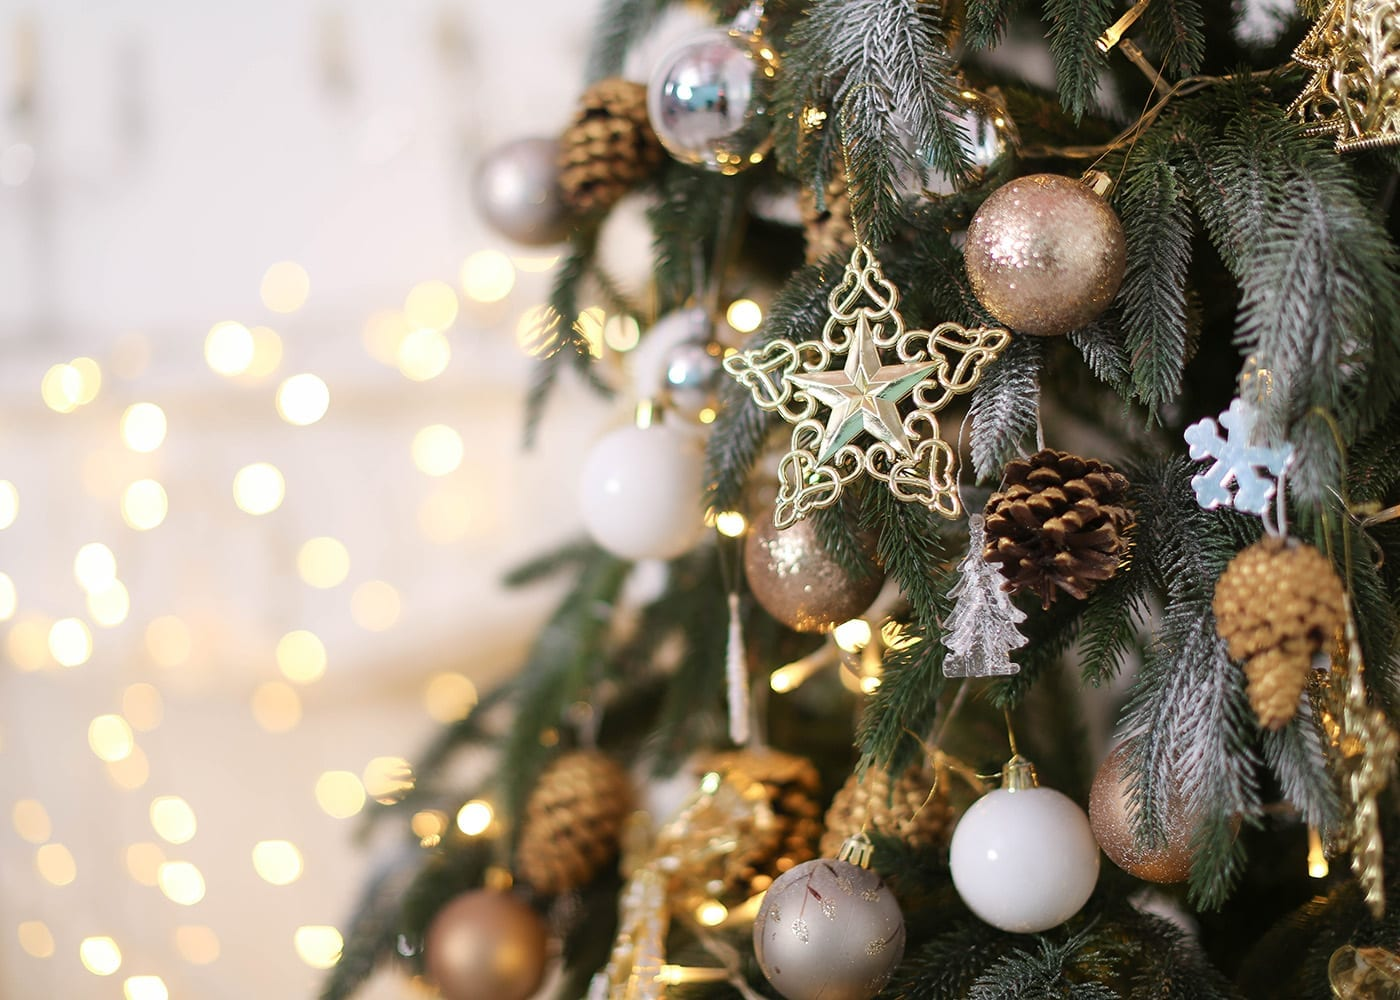 Christmas Tree with Lights & Ornaments